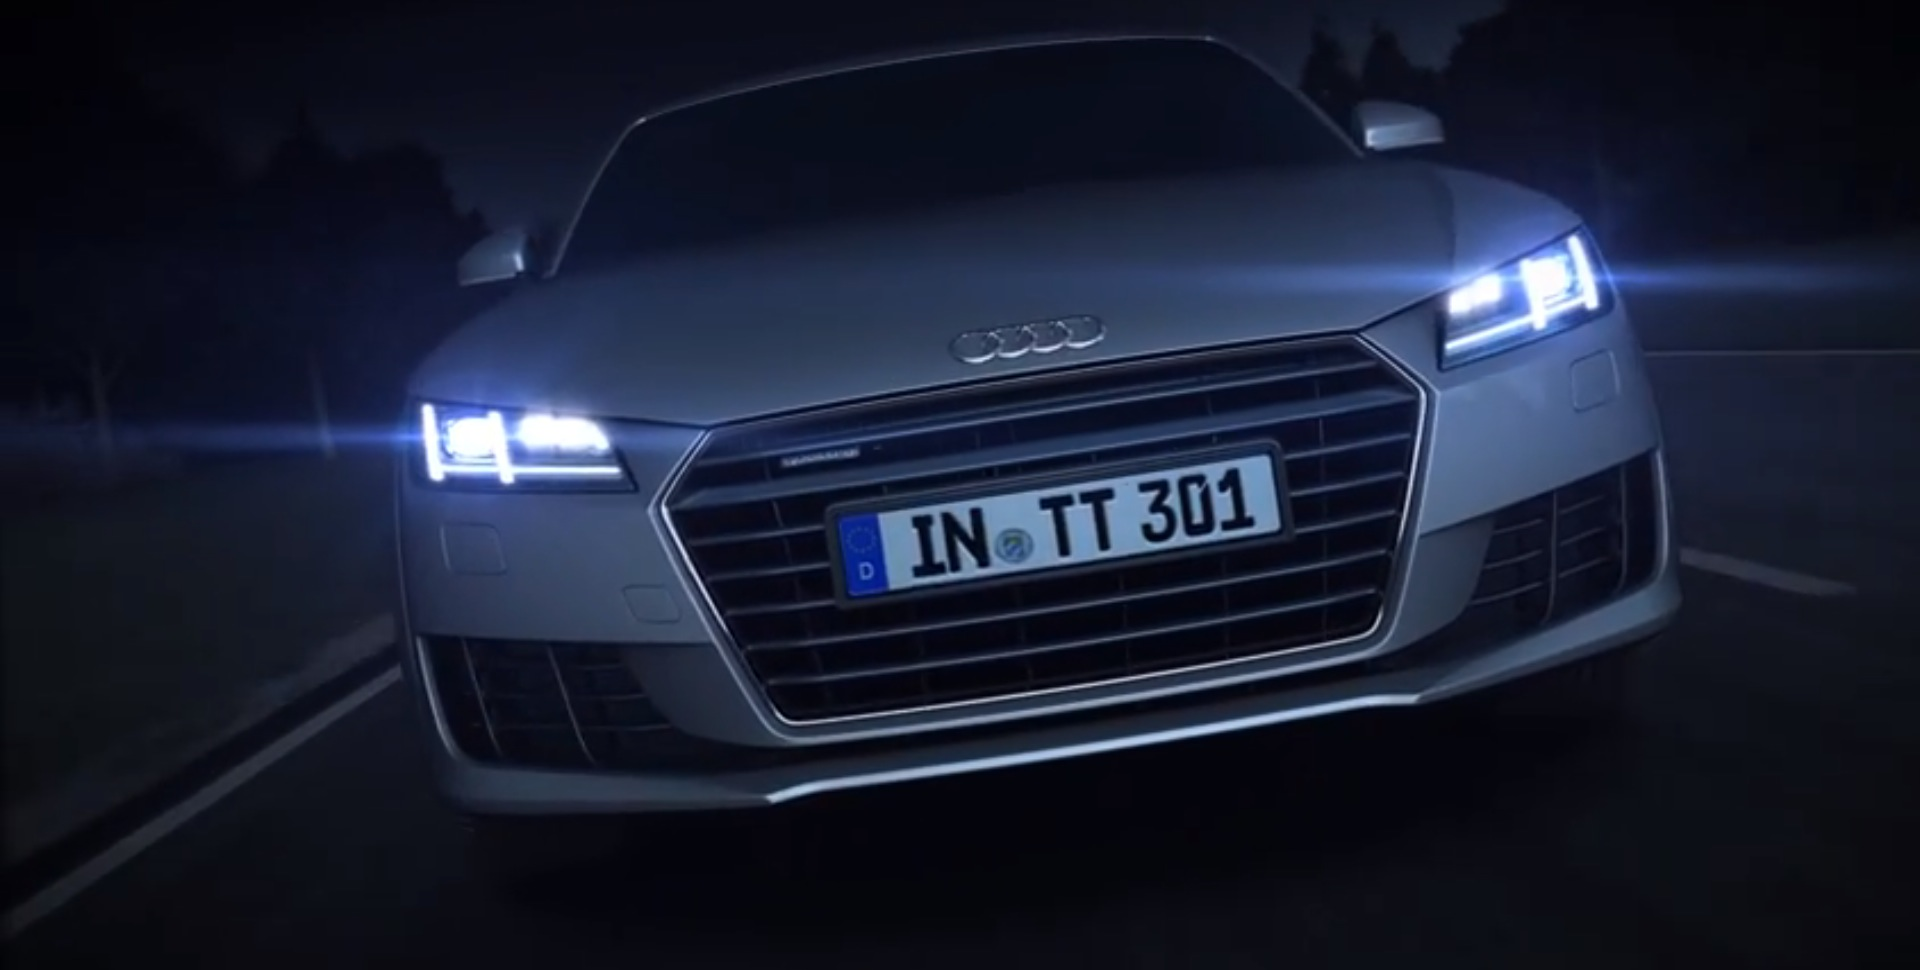 Audi Tt Matrix Led Headlights Detailed In New Promo